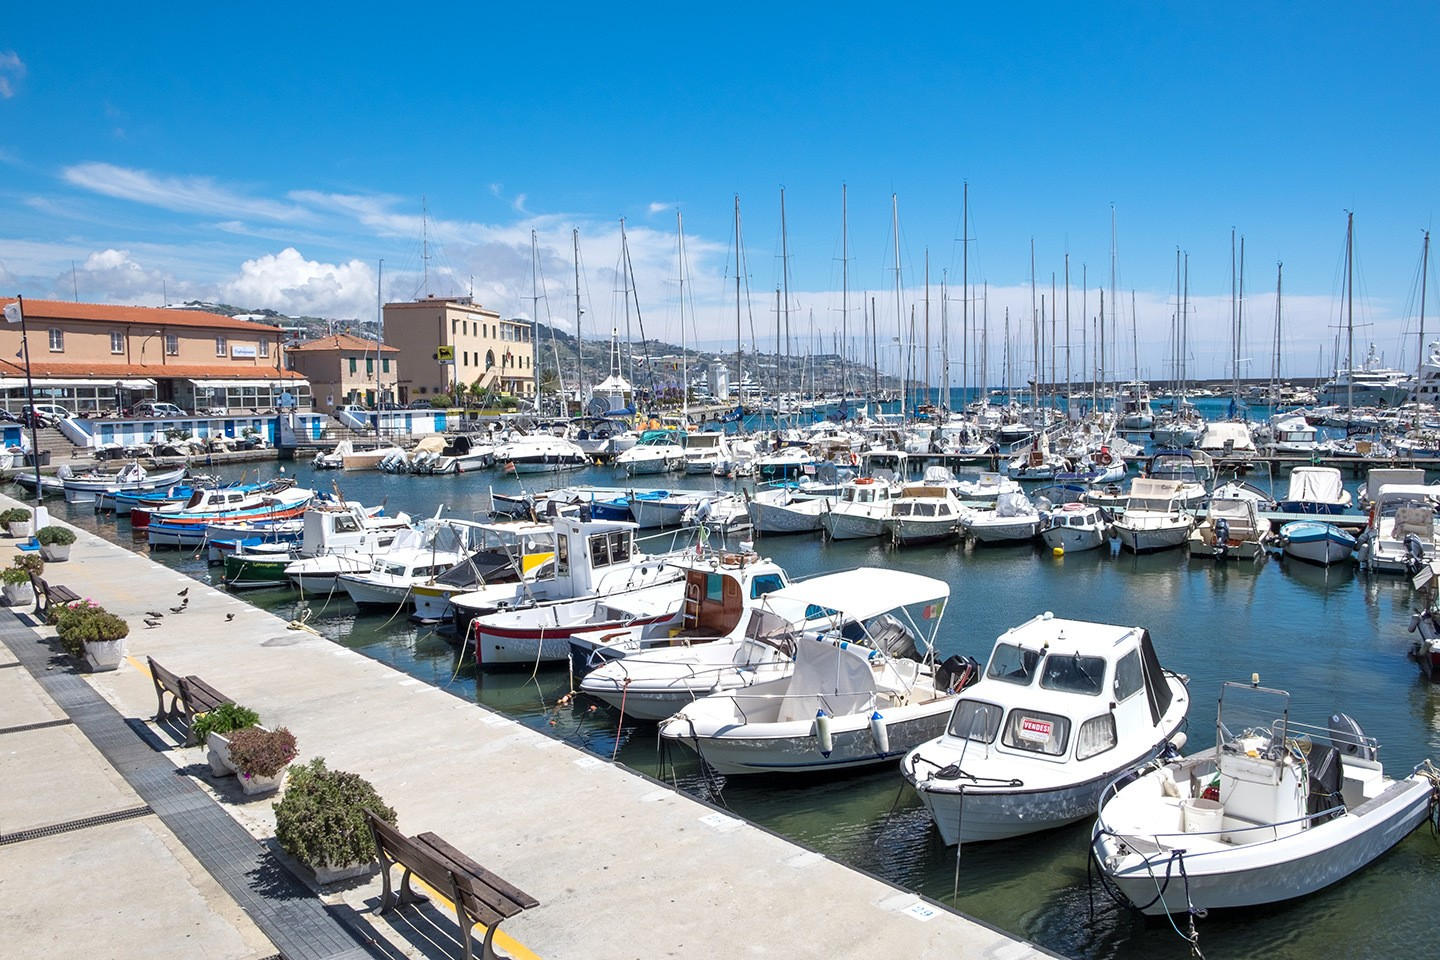 Boats in the harbour in San Remo on the Italian Riveira